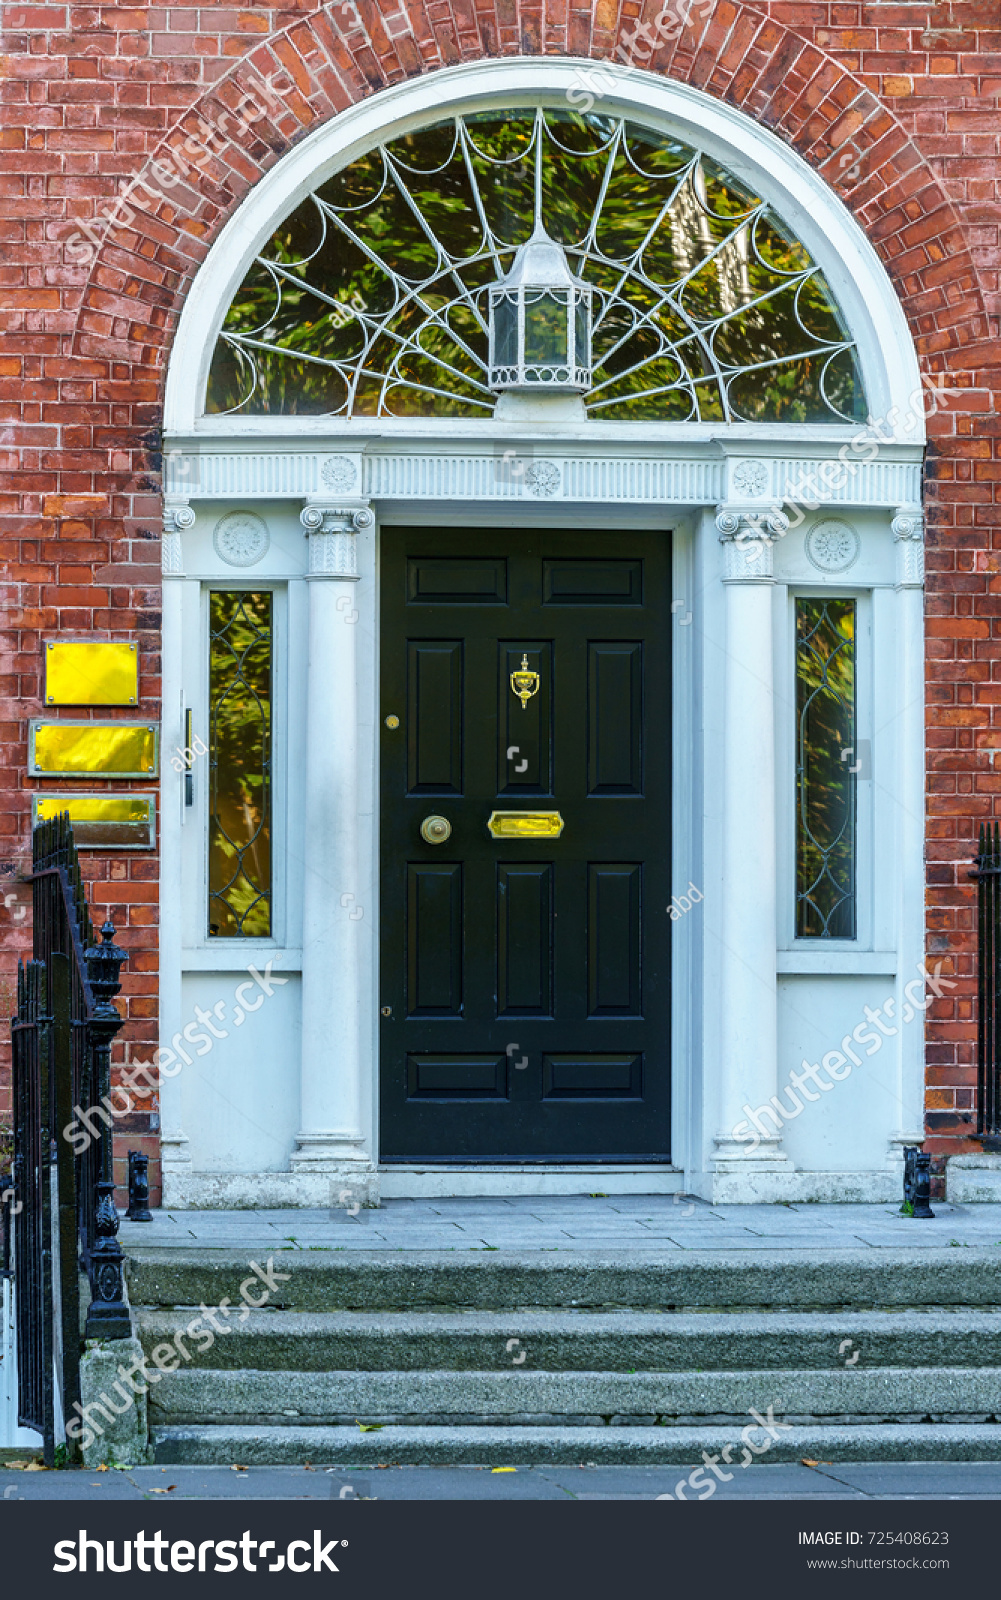 Georgian doors in Dublin & Georgian Doors Dublin Stock Photo 725408623 - Shutterstock pezcame.com